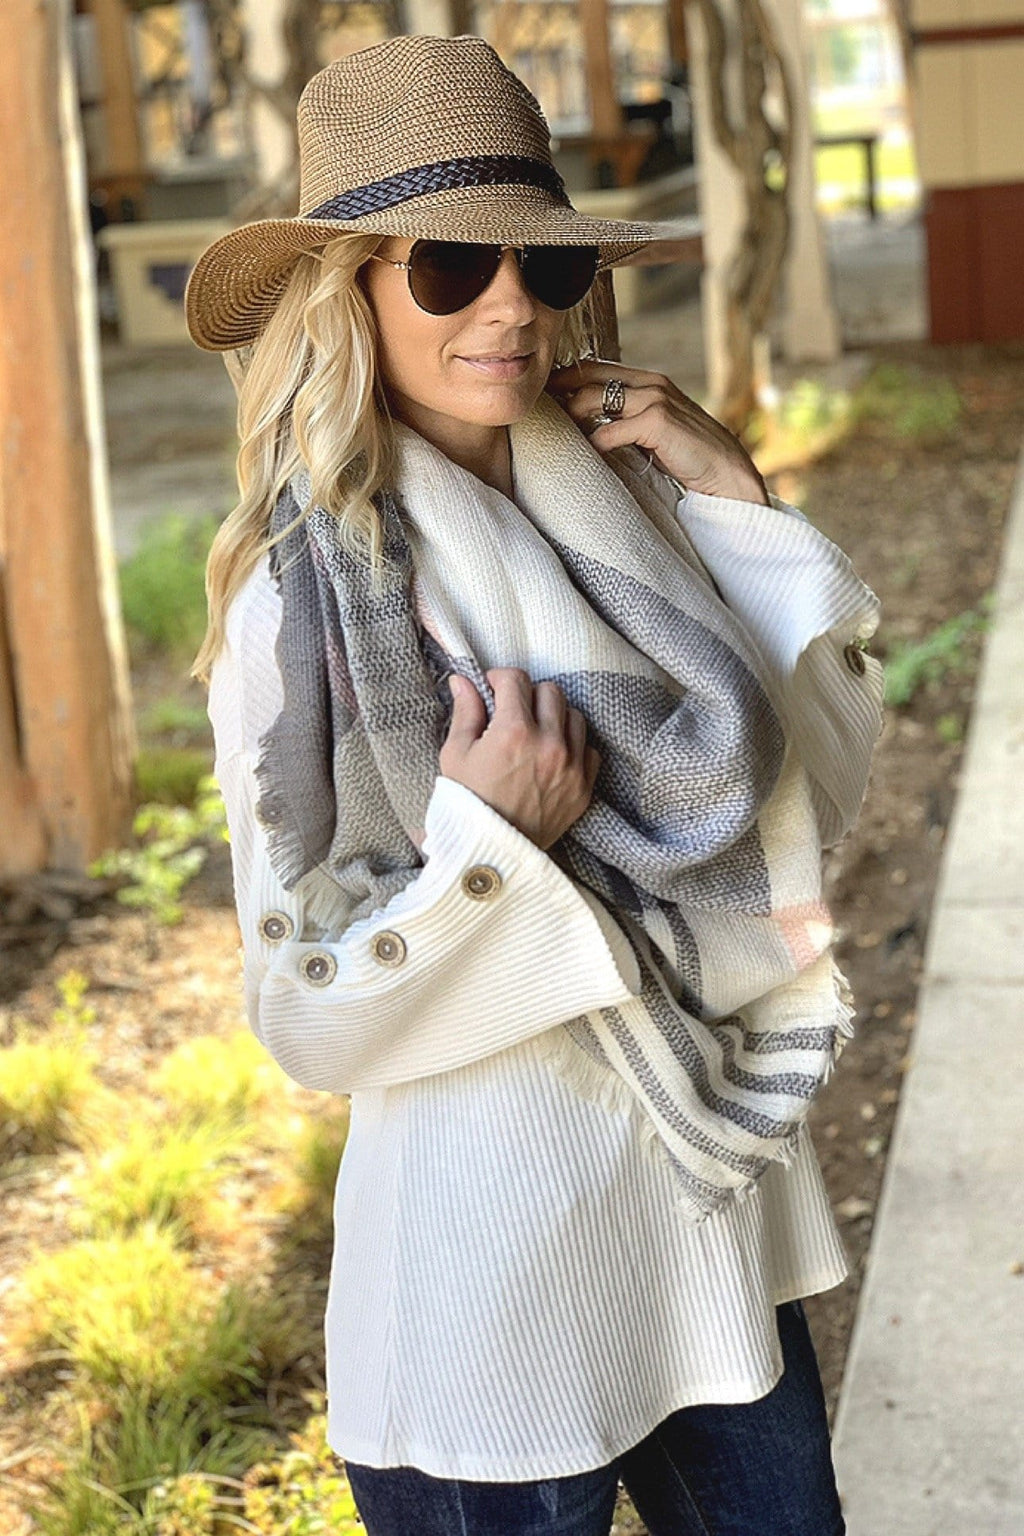 AUTUMN AIR BLANKET SCARF-IVORY/GREY/PINK - Infinity Raine